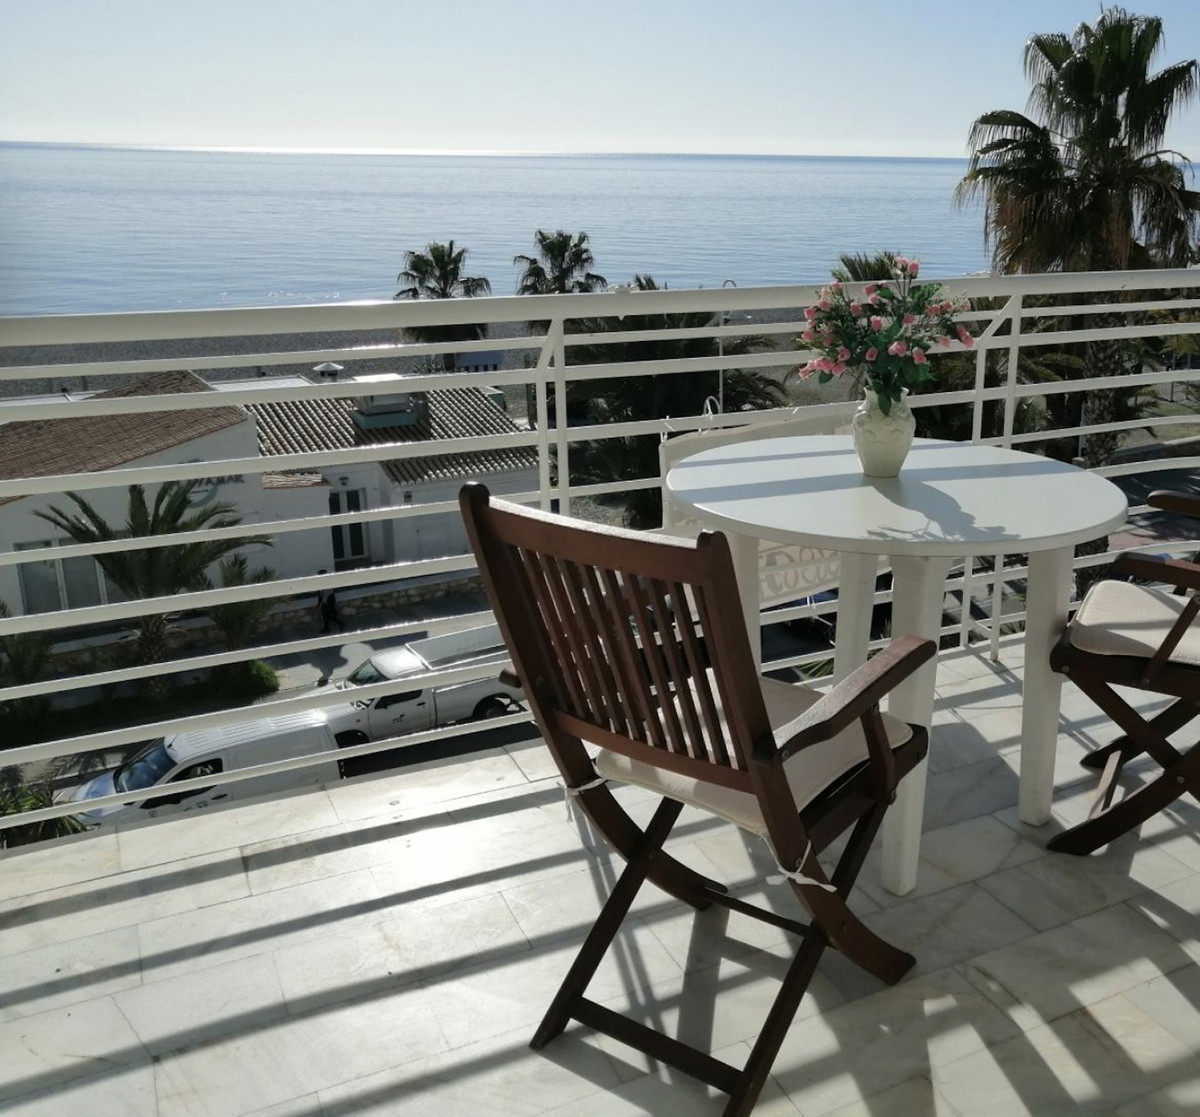 A cozy sunny 1 bedroom apartment on the first line of the beach in Almunecar. In very good condition,Spain